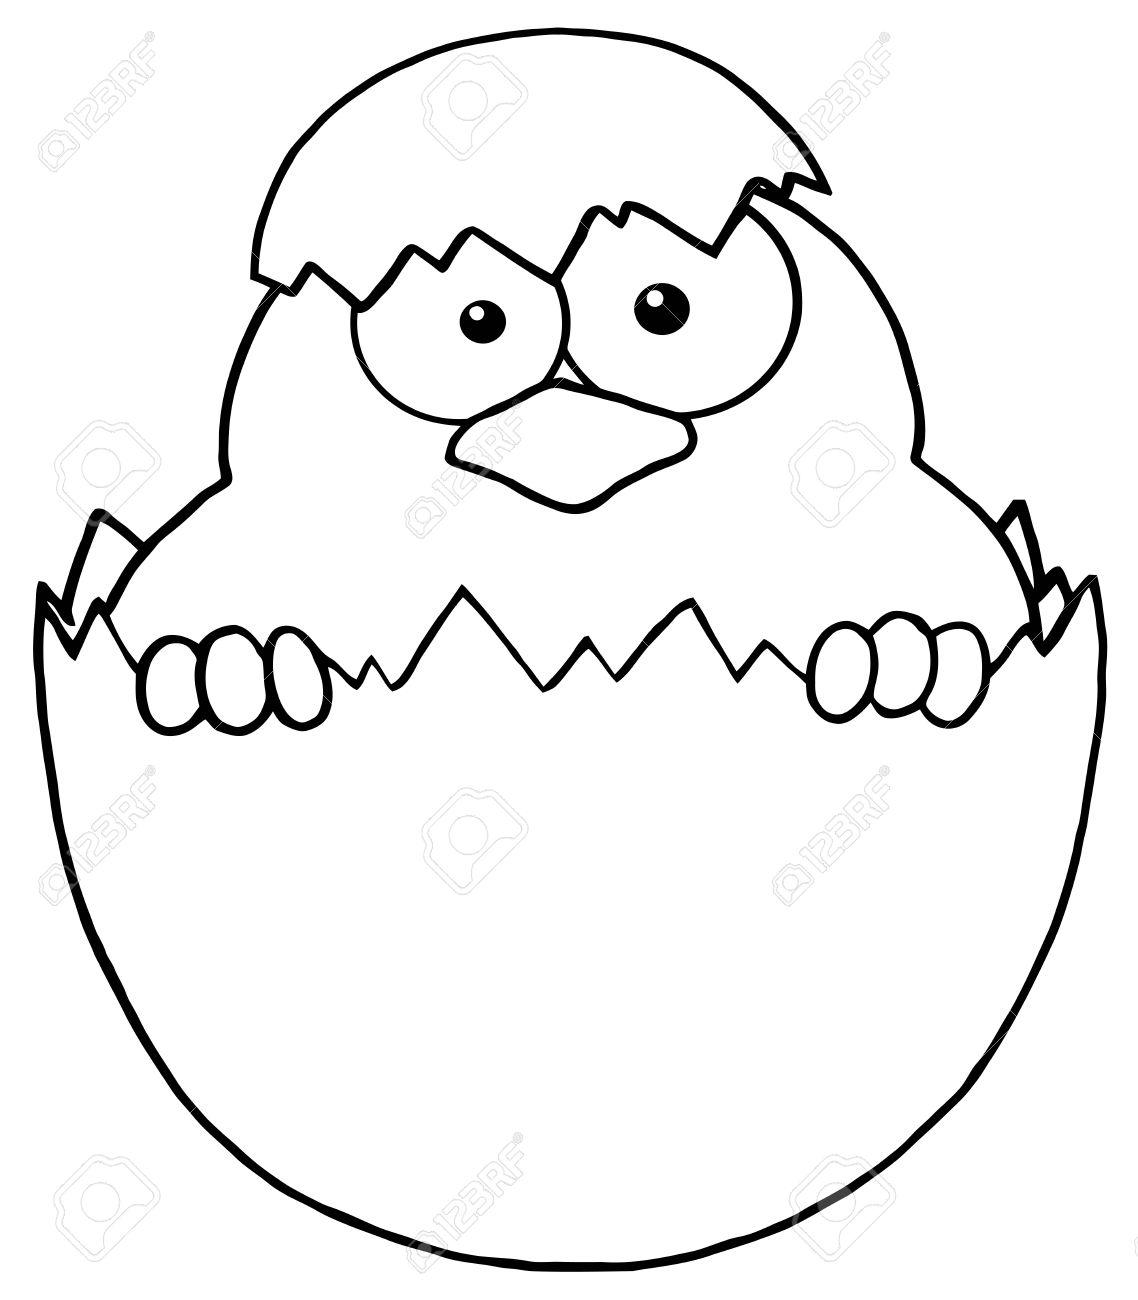 Outlined Surprise Chick Peeking Out Of An Egg Shell Royalty Free.